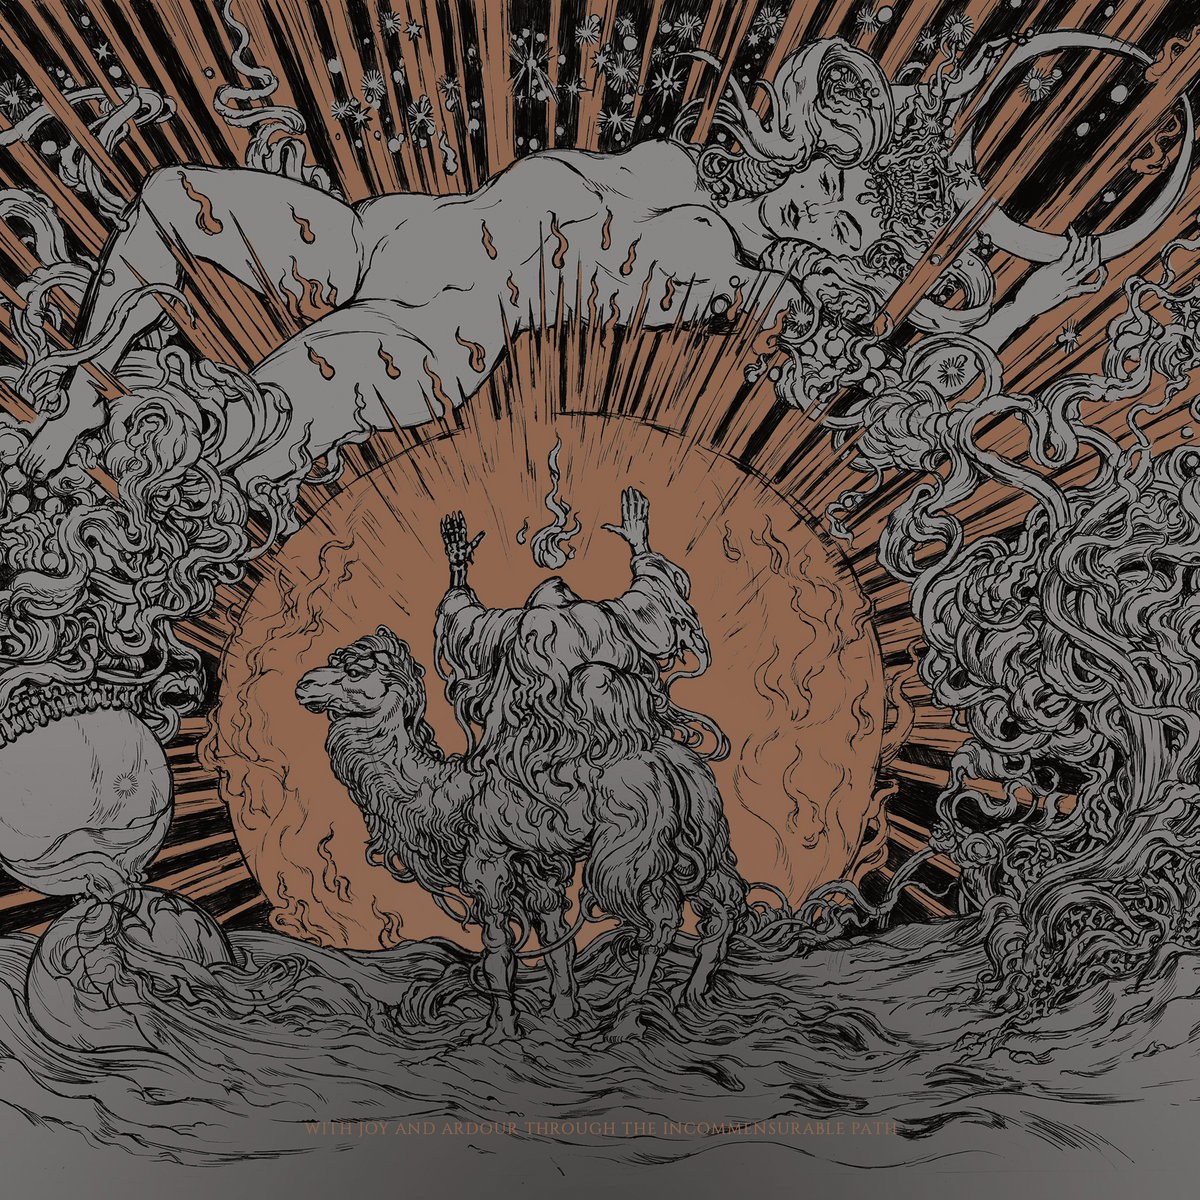 Hadit - With Joy and Ardour Through the Incommensurable Path